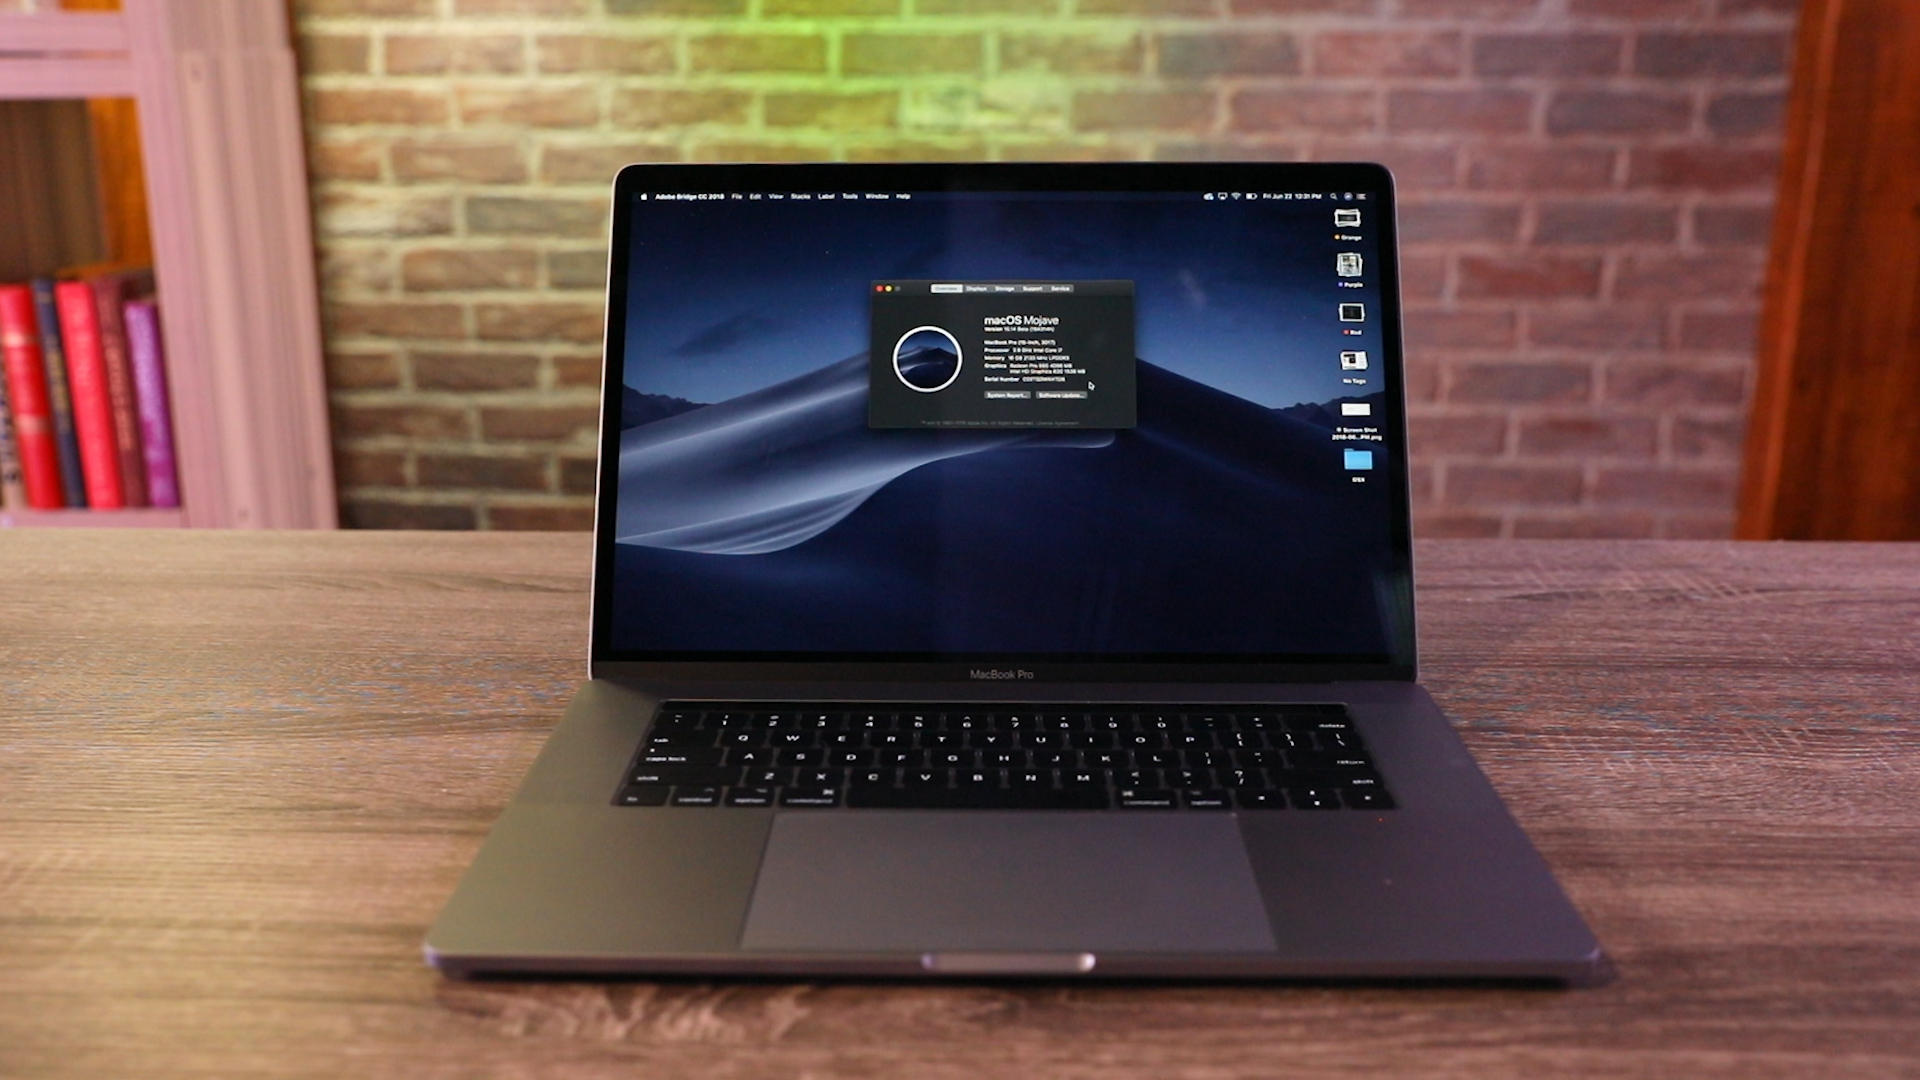 Macos Mojave Beta Hands On With Dark Mode Continuity Camera Gallery View And More Cnet